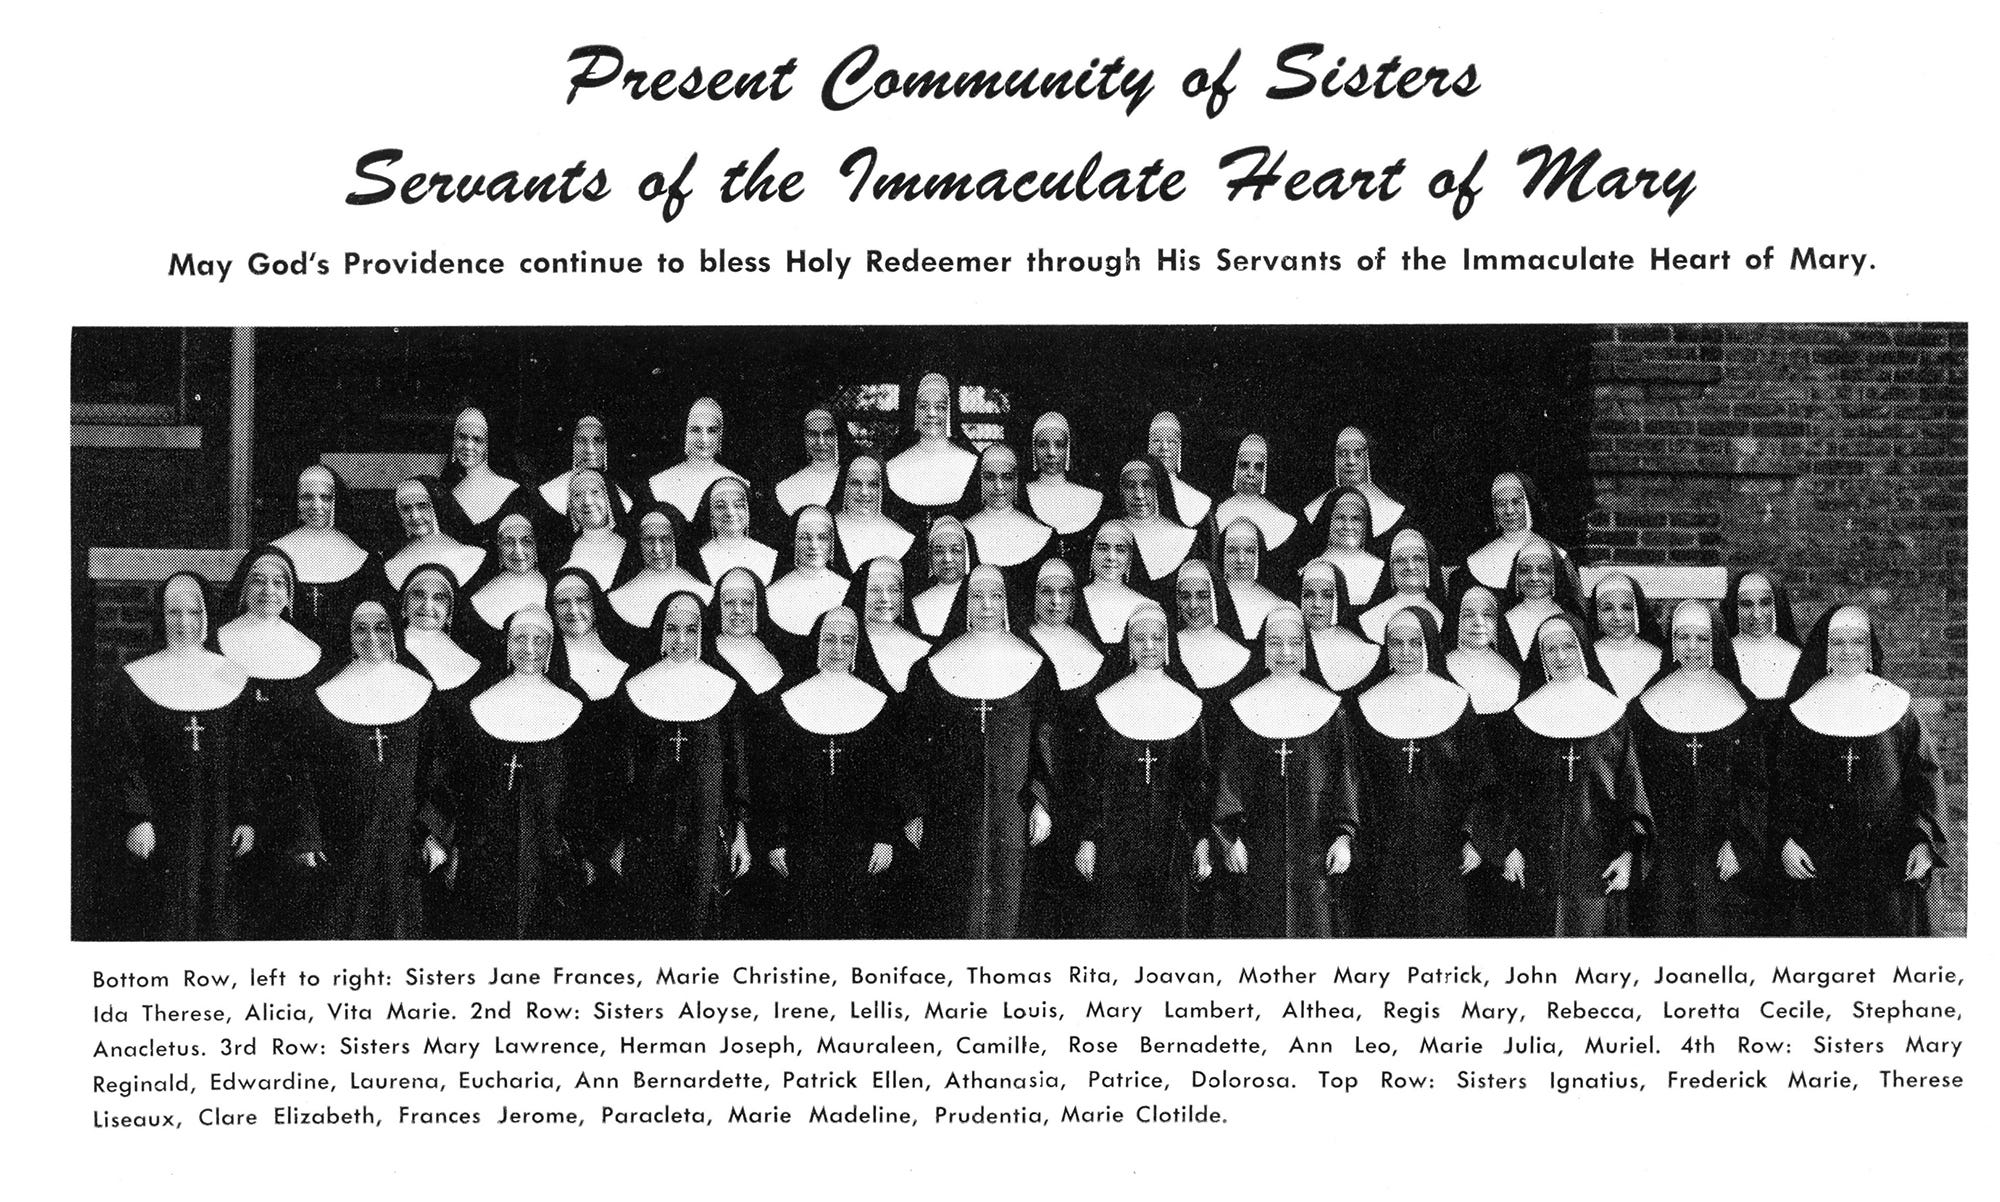 There are 26 Catholic sisters who are now working in Catholic schools across the six-county Archdiocese of Detroit, which has 86 Catholic schools. There were twice that number of sisters working in the 1960s at the elementary and high schools of just one parish, Holy Redeemer in southwest Detroit, pictured here.  In the early 1960s, there were 5,921 sisters doing ministry in the archdiocese, including working in hospitals and  schools.